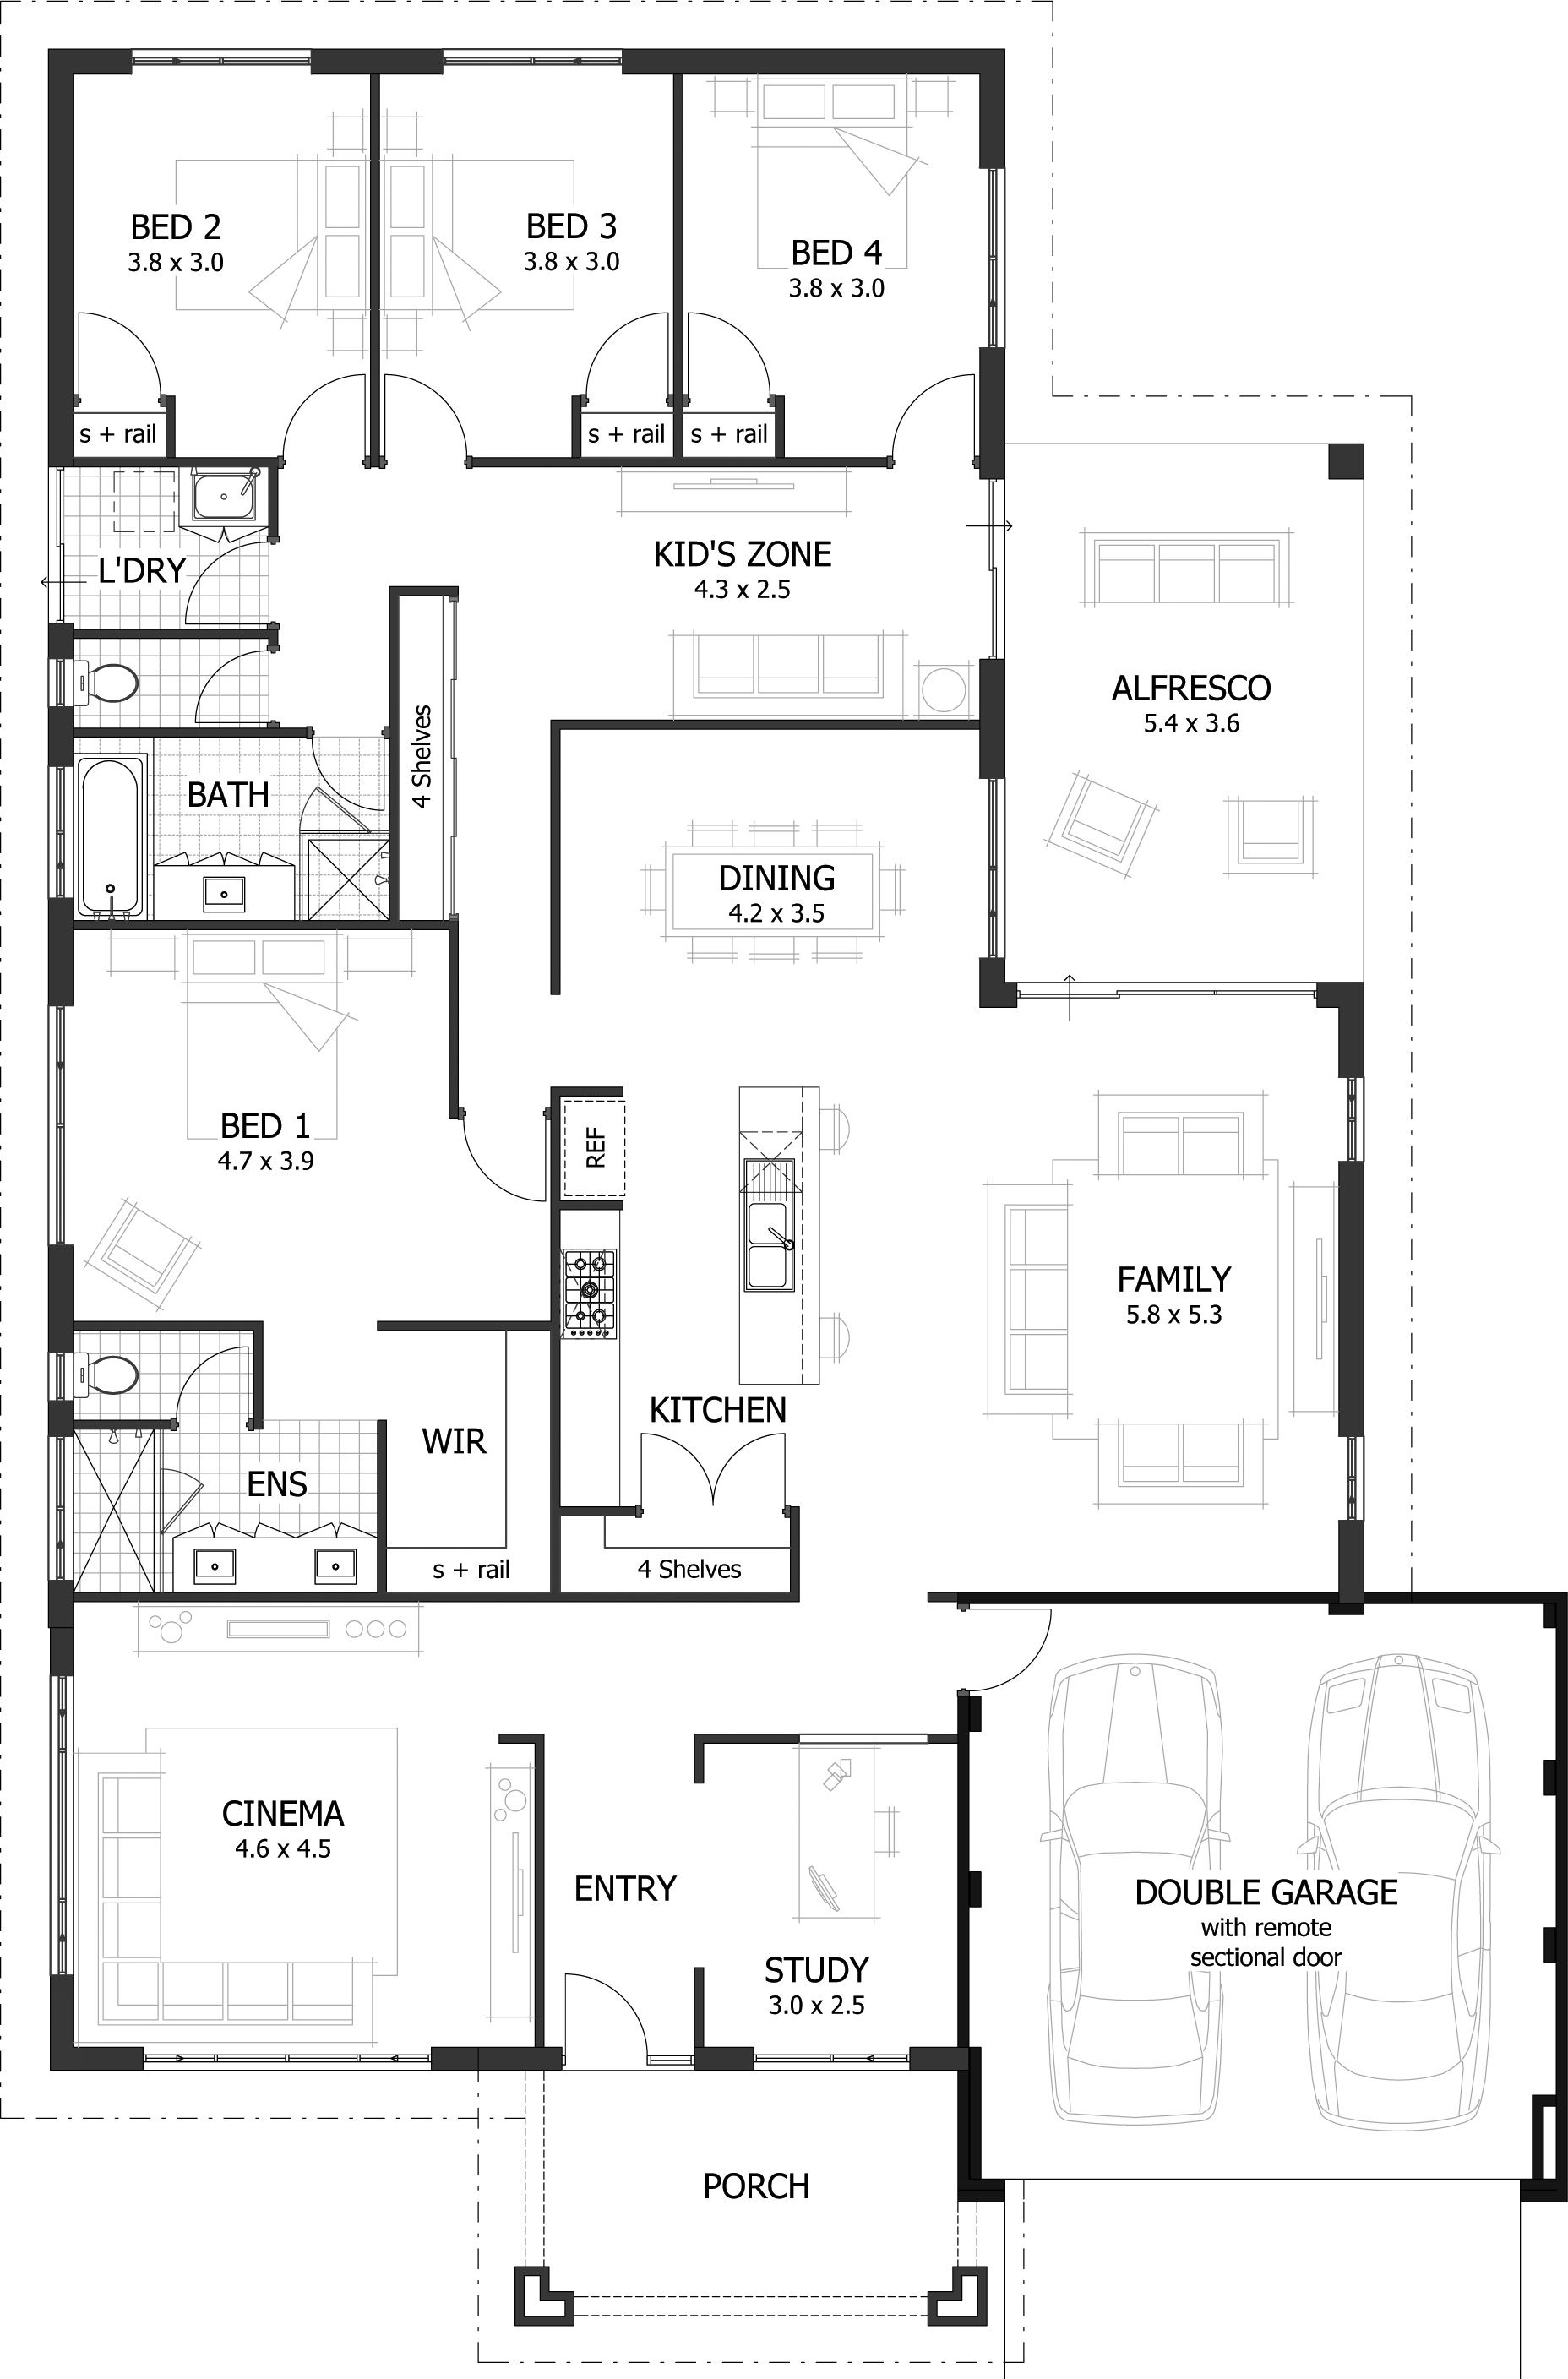 4 bedroom house plans home designs celebration homes for Home design 4 bedroom